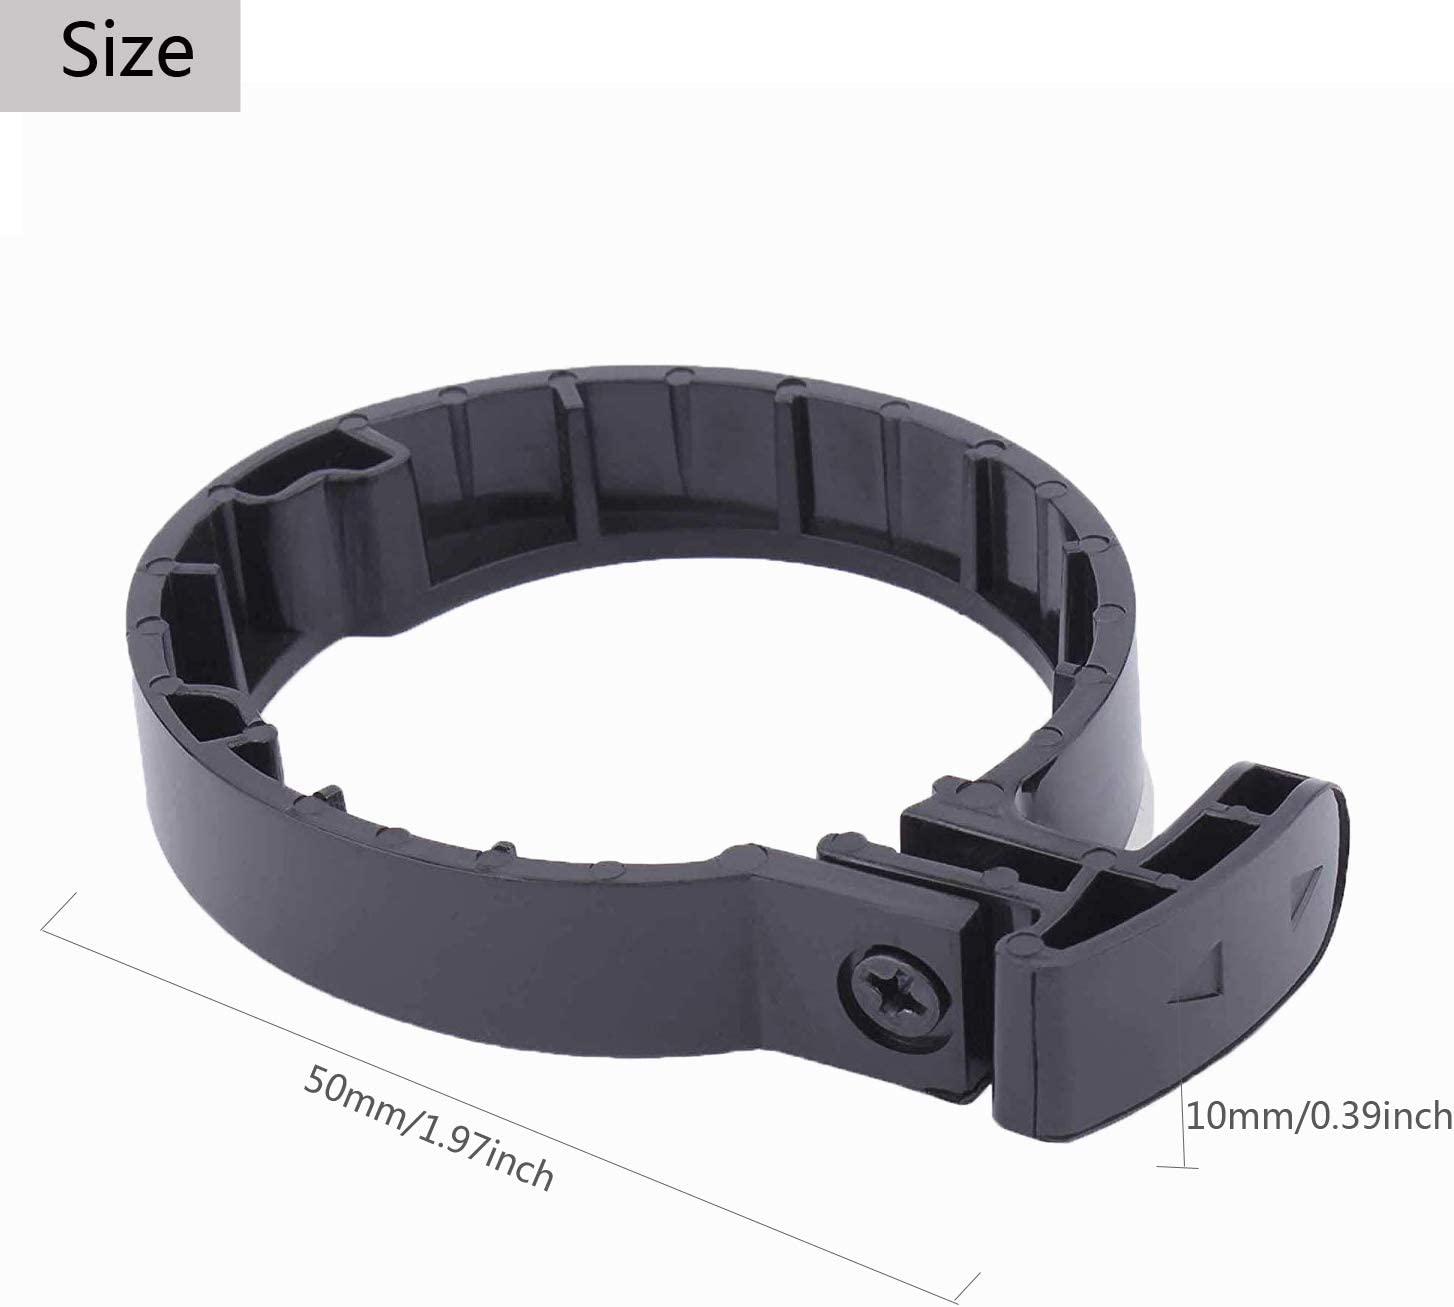 Black Plastic Wear-Resisting Circle Clasped Guard Ring Buckle for M365 Scooter to Extend Service Life Yosoo Health Gear Electric Scooter Ring Buckle